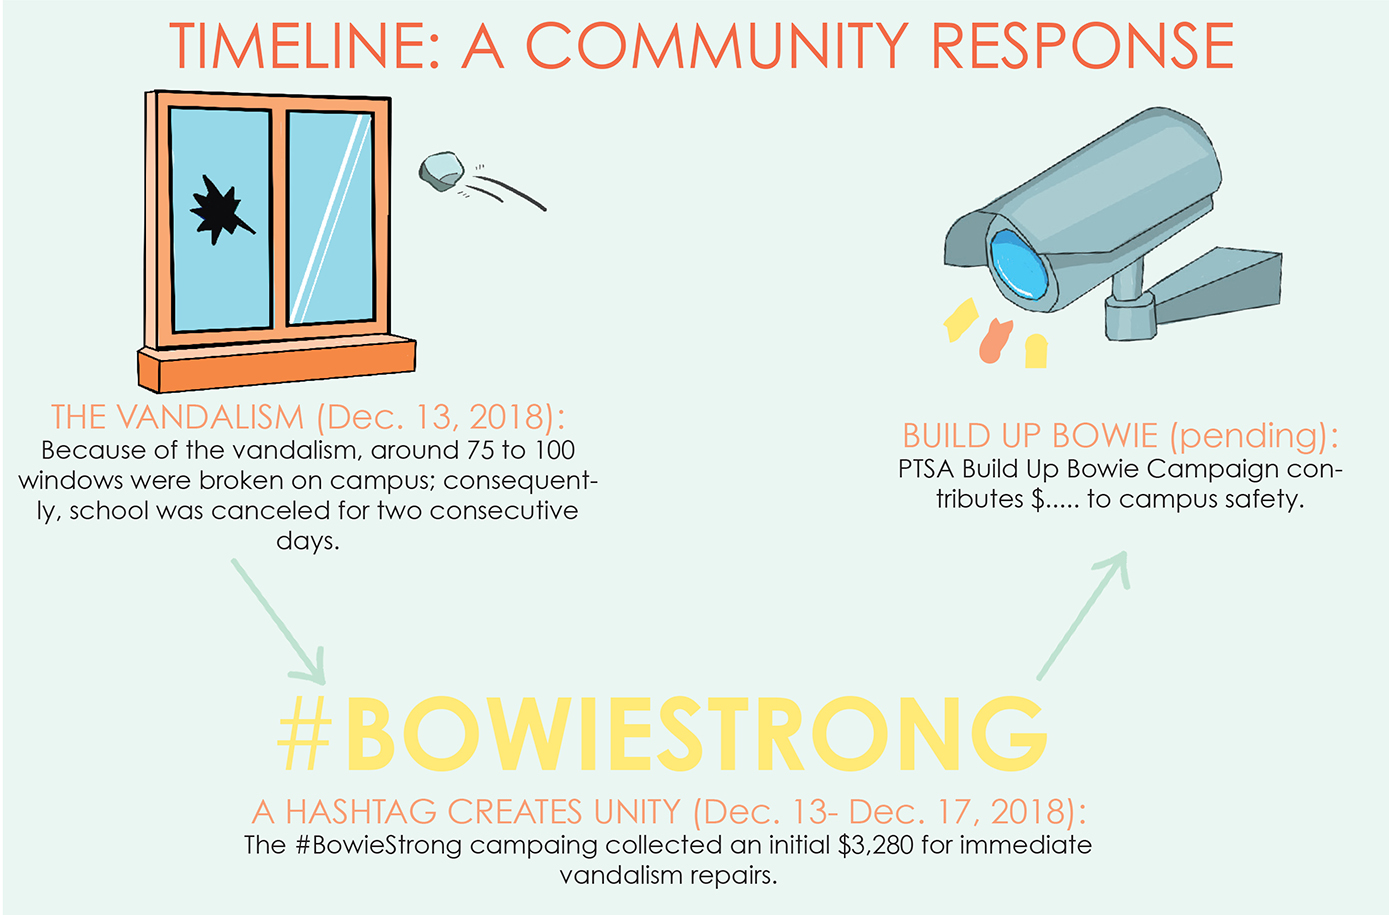 The PTSA had a $10,000 donation goal for the 2019 Build Up Bowie campaign after receiving an initial $3,280 in December for vandalism repairs.